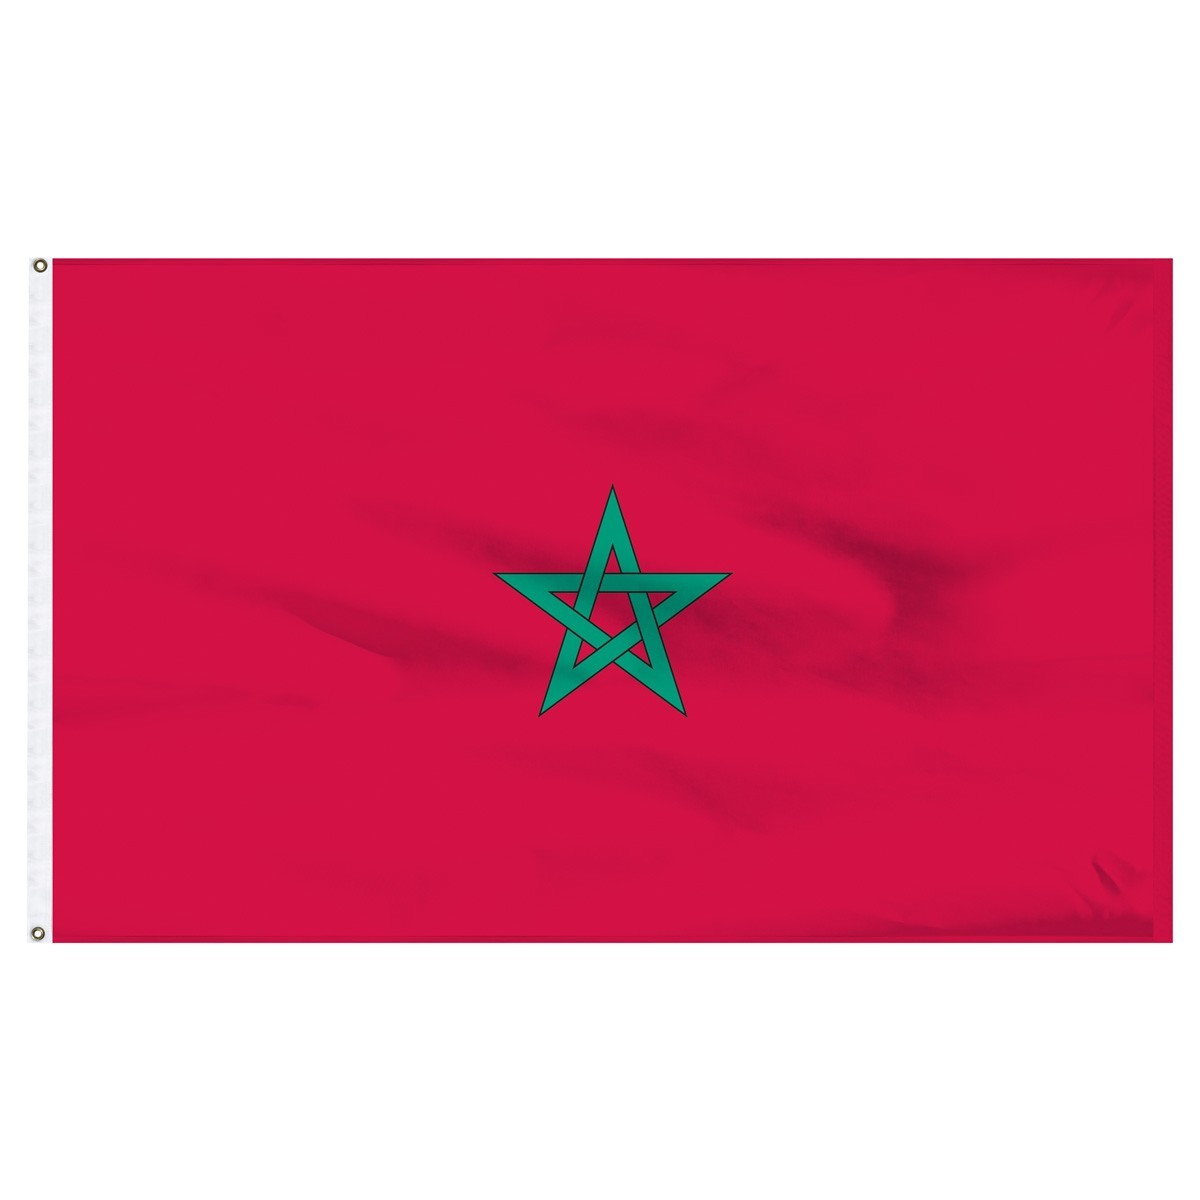 Morocco 4' x 6' Outdoor Nylon Flag